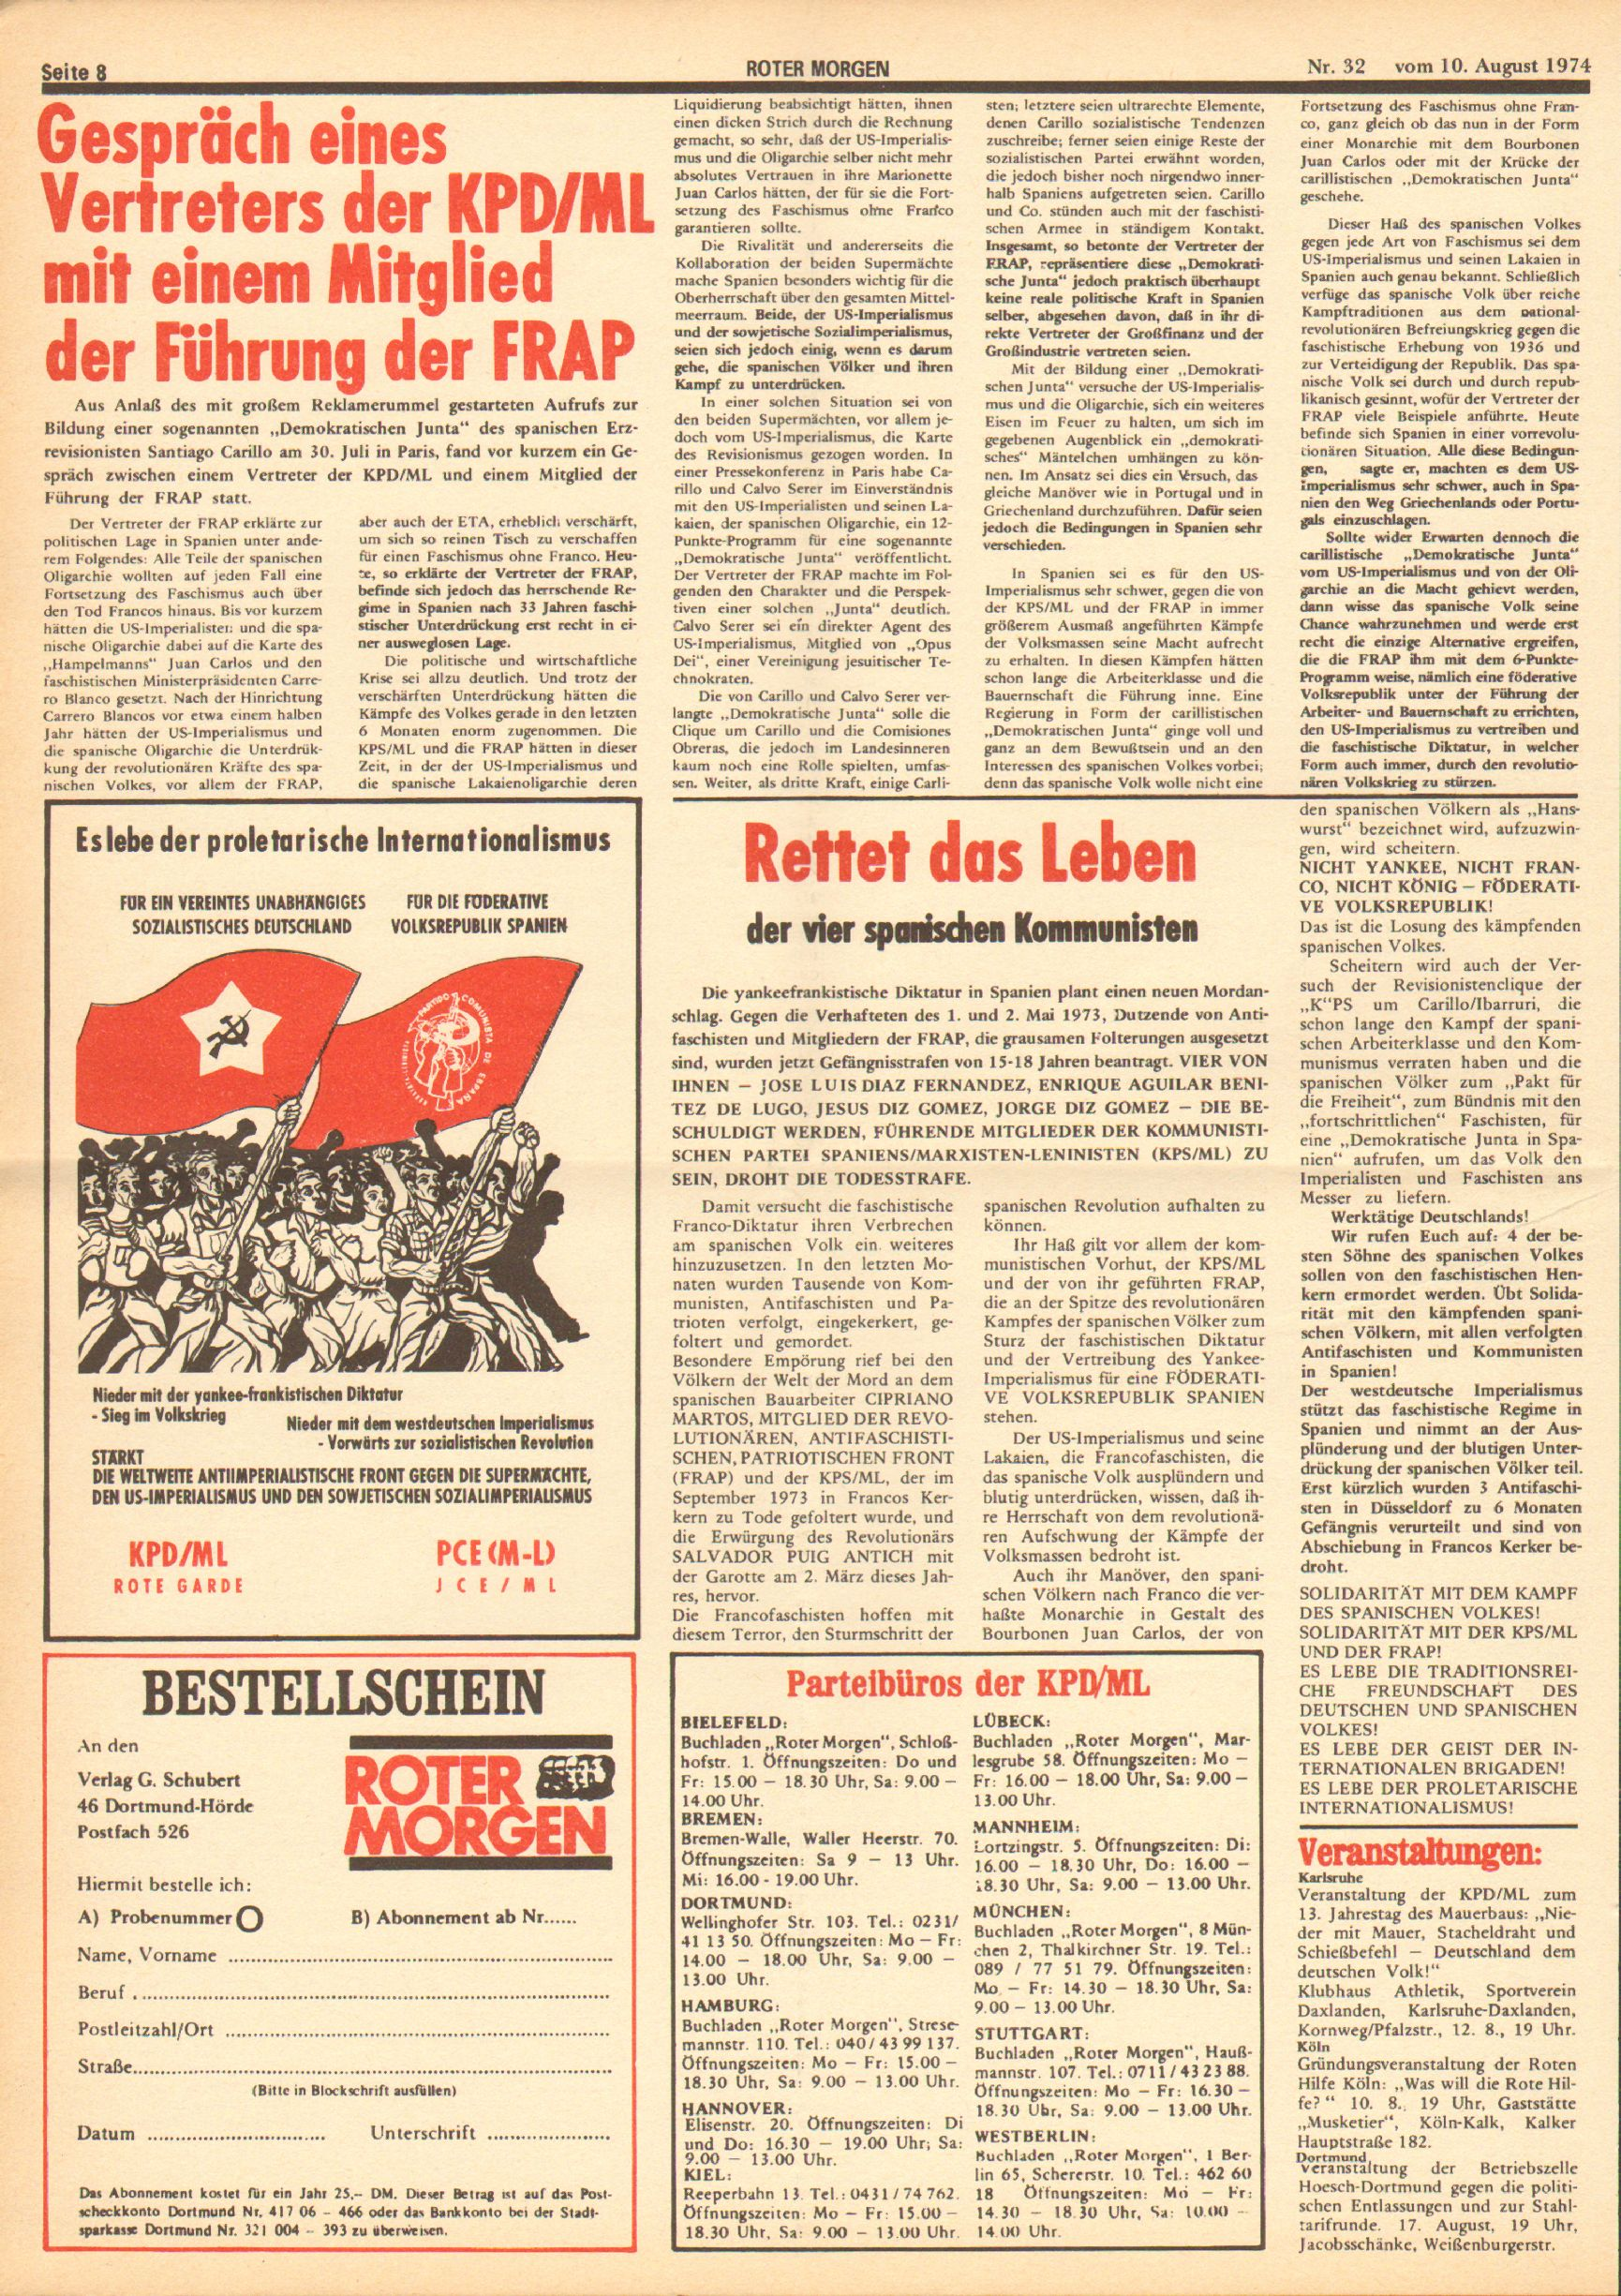 Roter Morgen, 8. Jg., 10. August 1974, Nr. 32, Seite 8